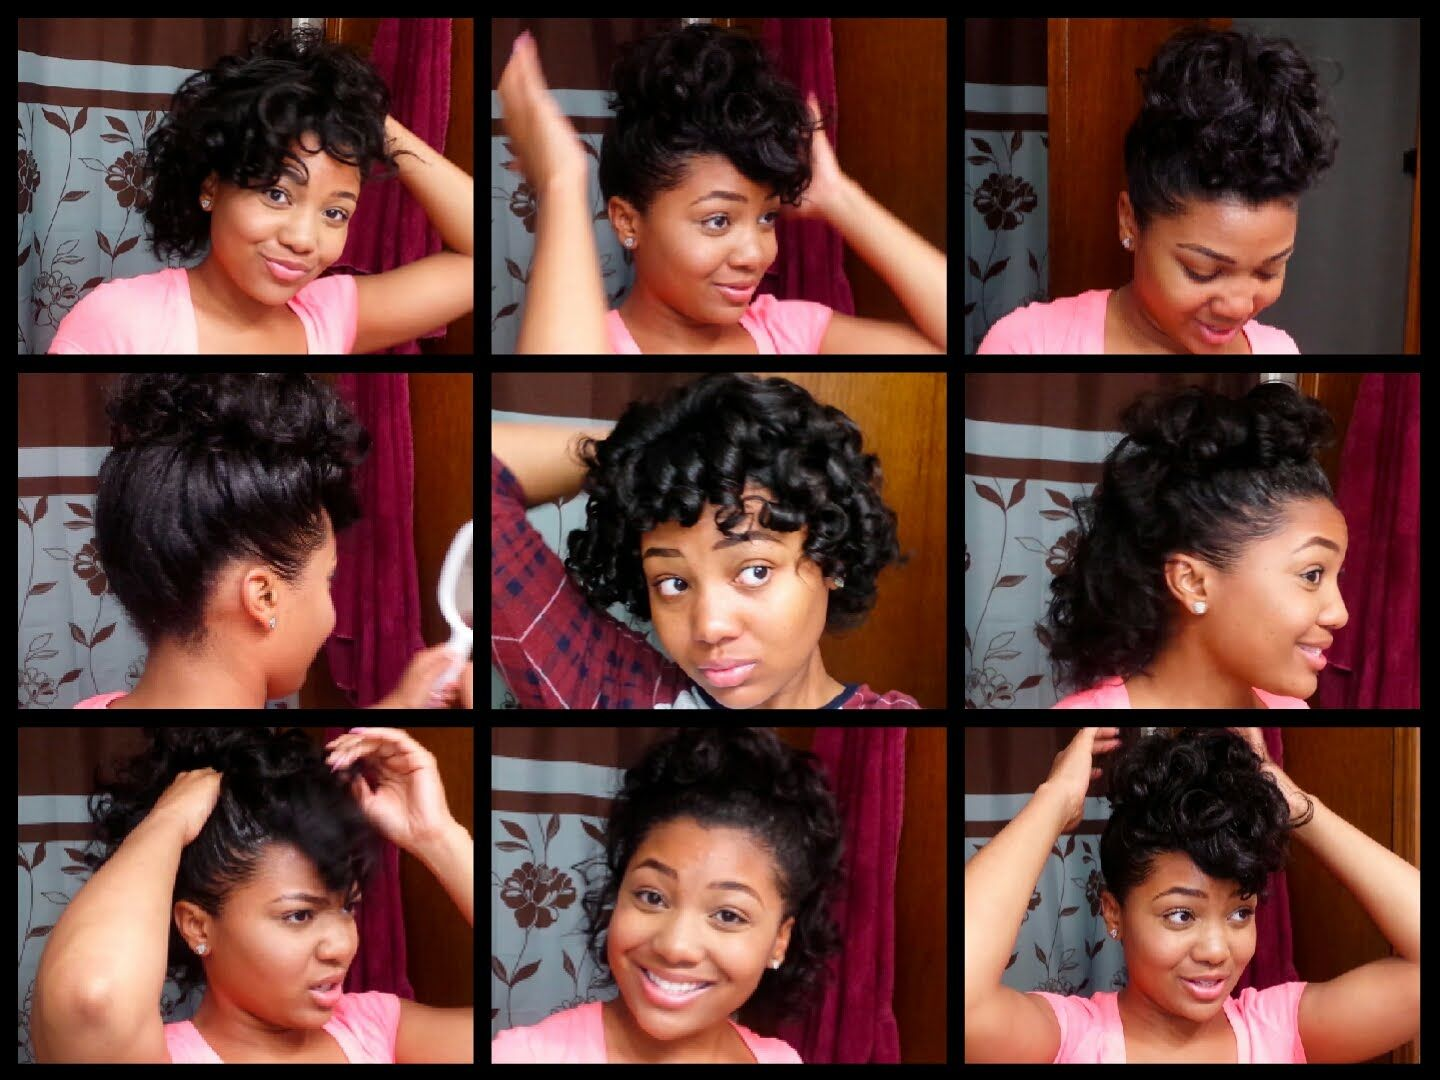 7 Easy Hairstyles For Relaxed Hair Styles For Curled Hair Relaxed Hair Short Relaxed Hairstyles Curled Hairstyles